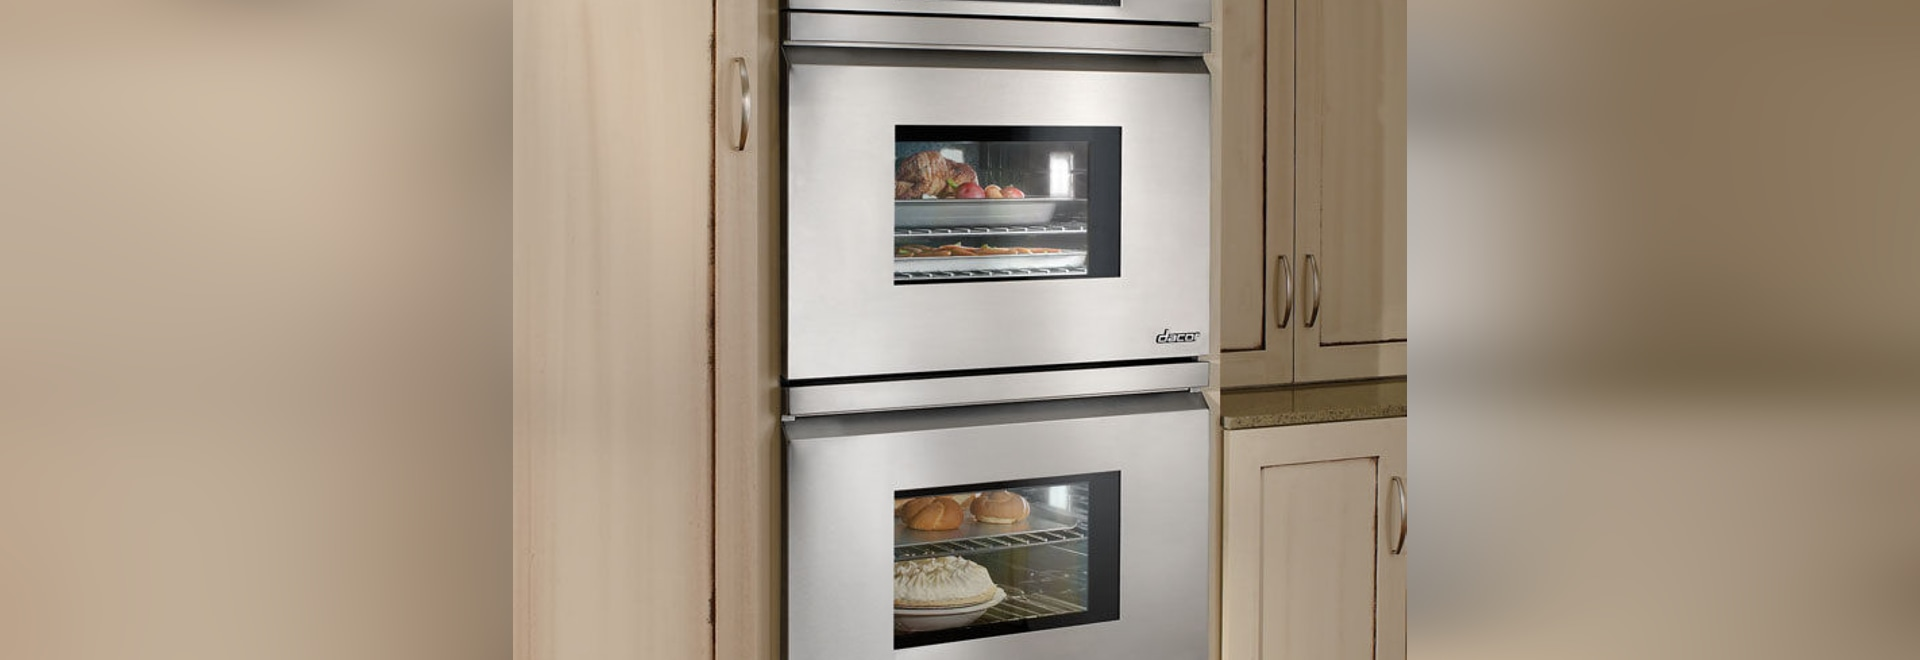 DISTINCTIVE: Double Wall Ovens